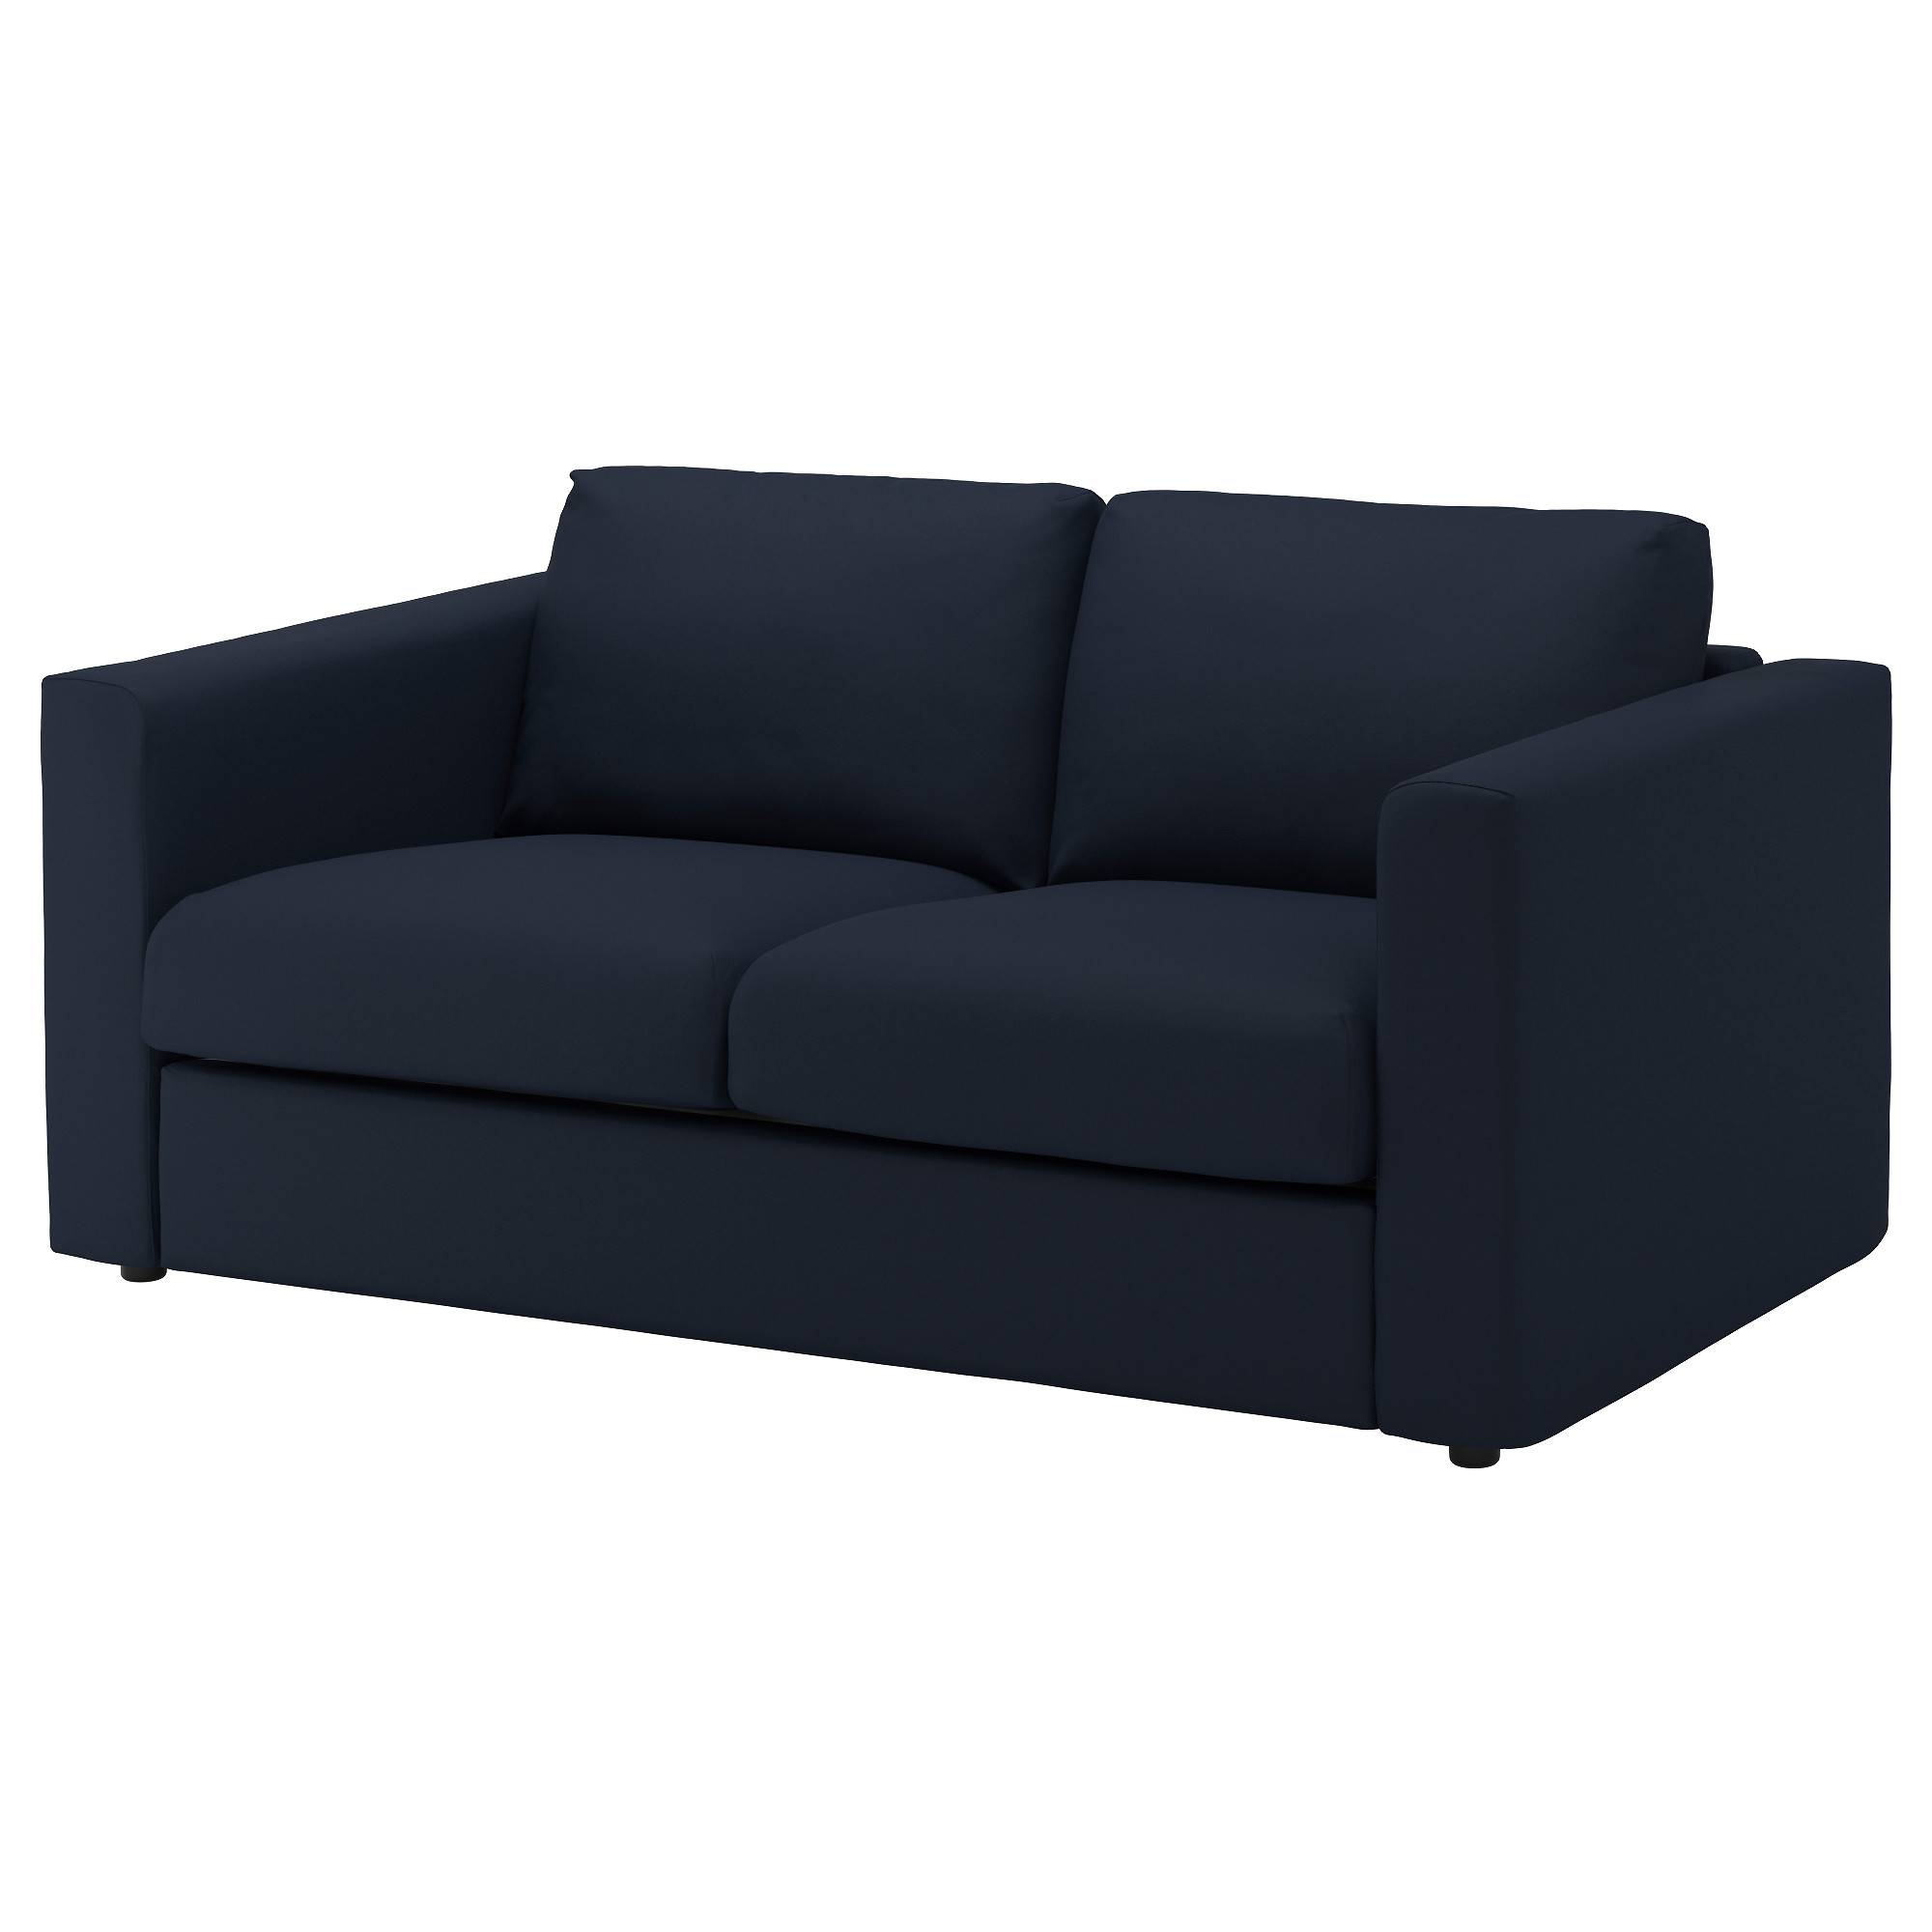 Vimle 2-Seat Sofa Gräsbo Black-Blue - Ikea regarding Ikea Two Seater Sofas (Image 30 of 30)